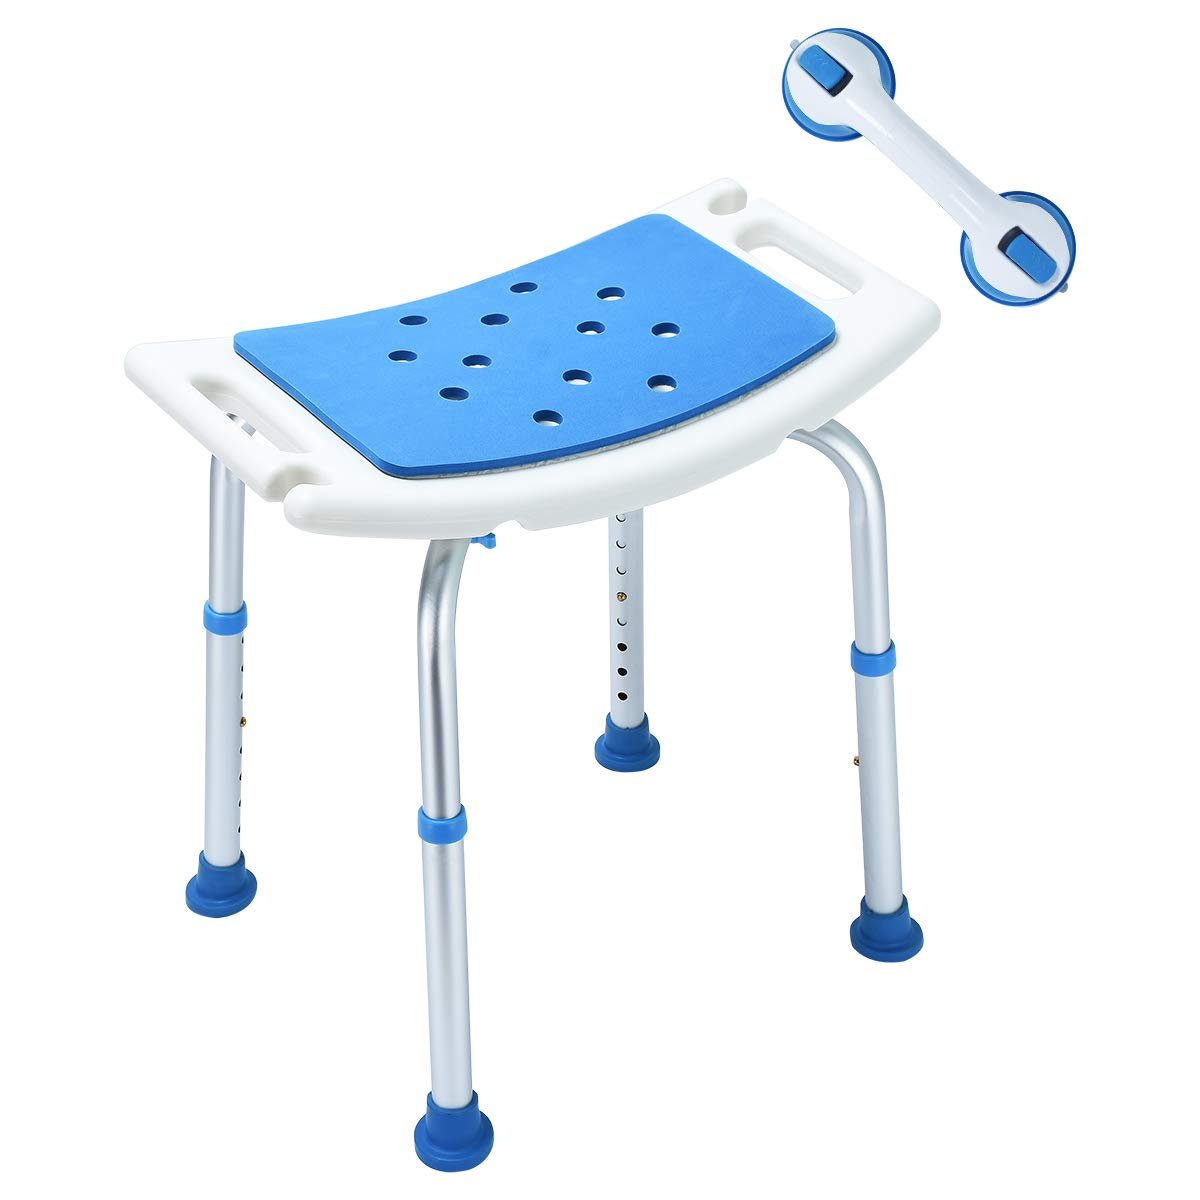 2018 Upgraded EVA Paded Shower Stool Chair with Assist Grab Bar, Stool Transfer Bench SPA Bathroom Bathtub Chair No-Slip Adjustable 8 Height (White/Blue) by HEALTH LINE MASSAGE PRODUCTS